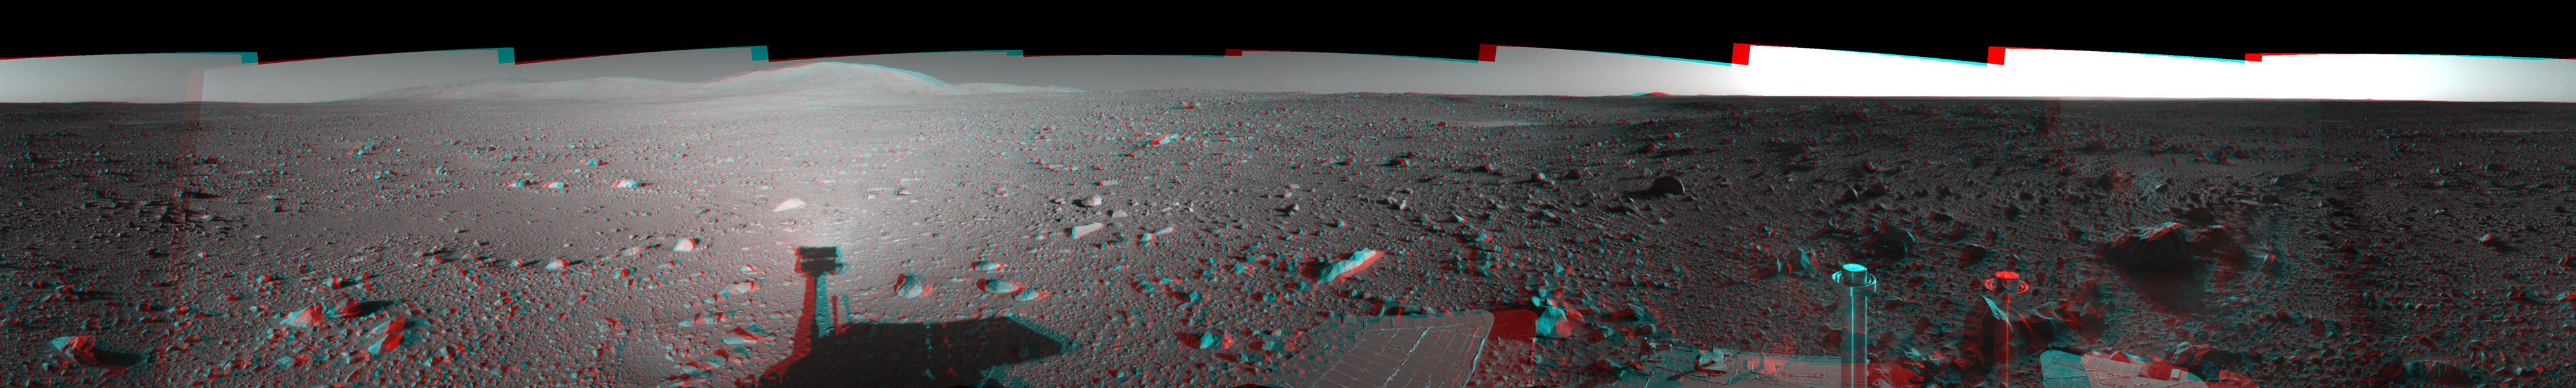 This 360-degree three dimensional anaglyph view from NASA's Mars Exploration Rover Spirit highlights Gusev crater on sol 147. 3D glasses are necessary to view this image.